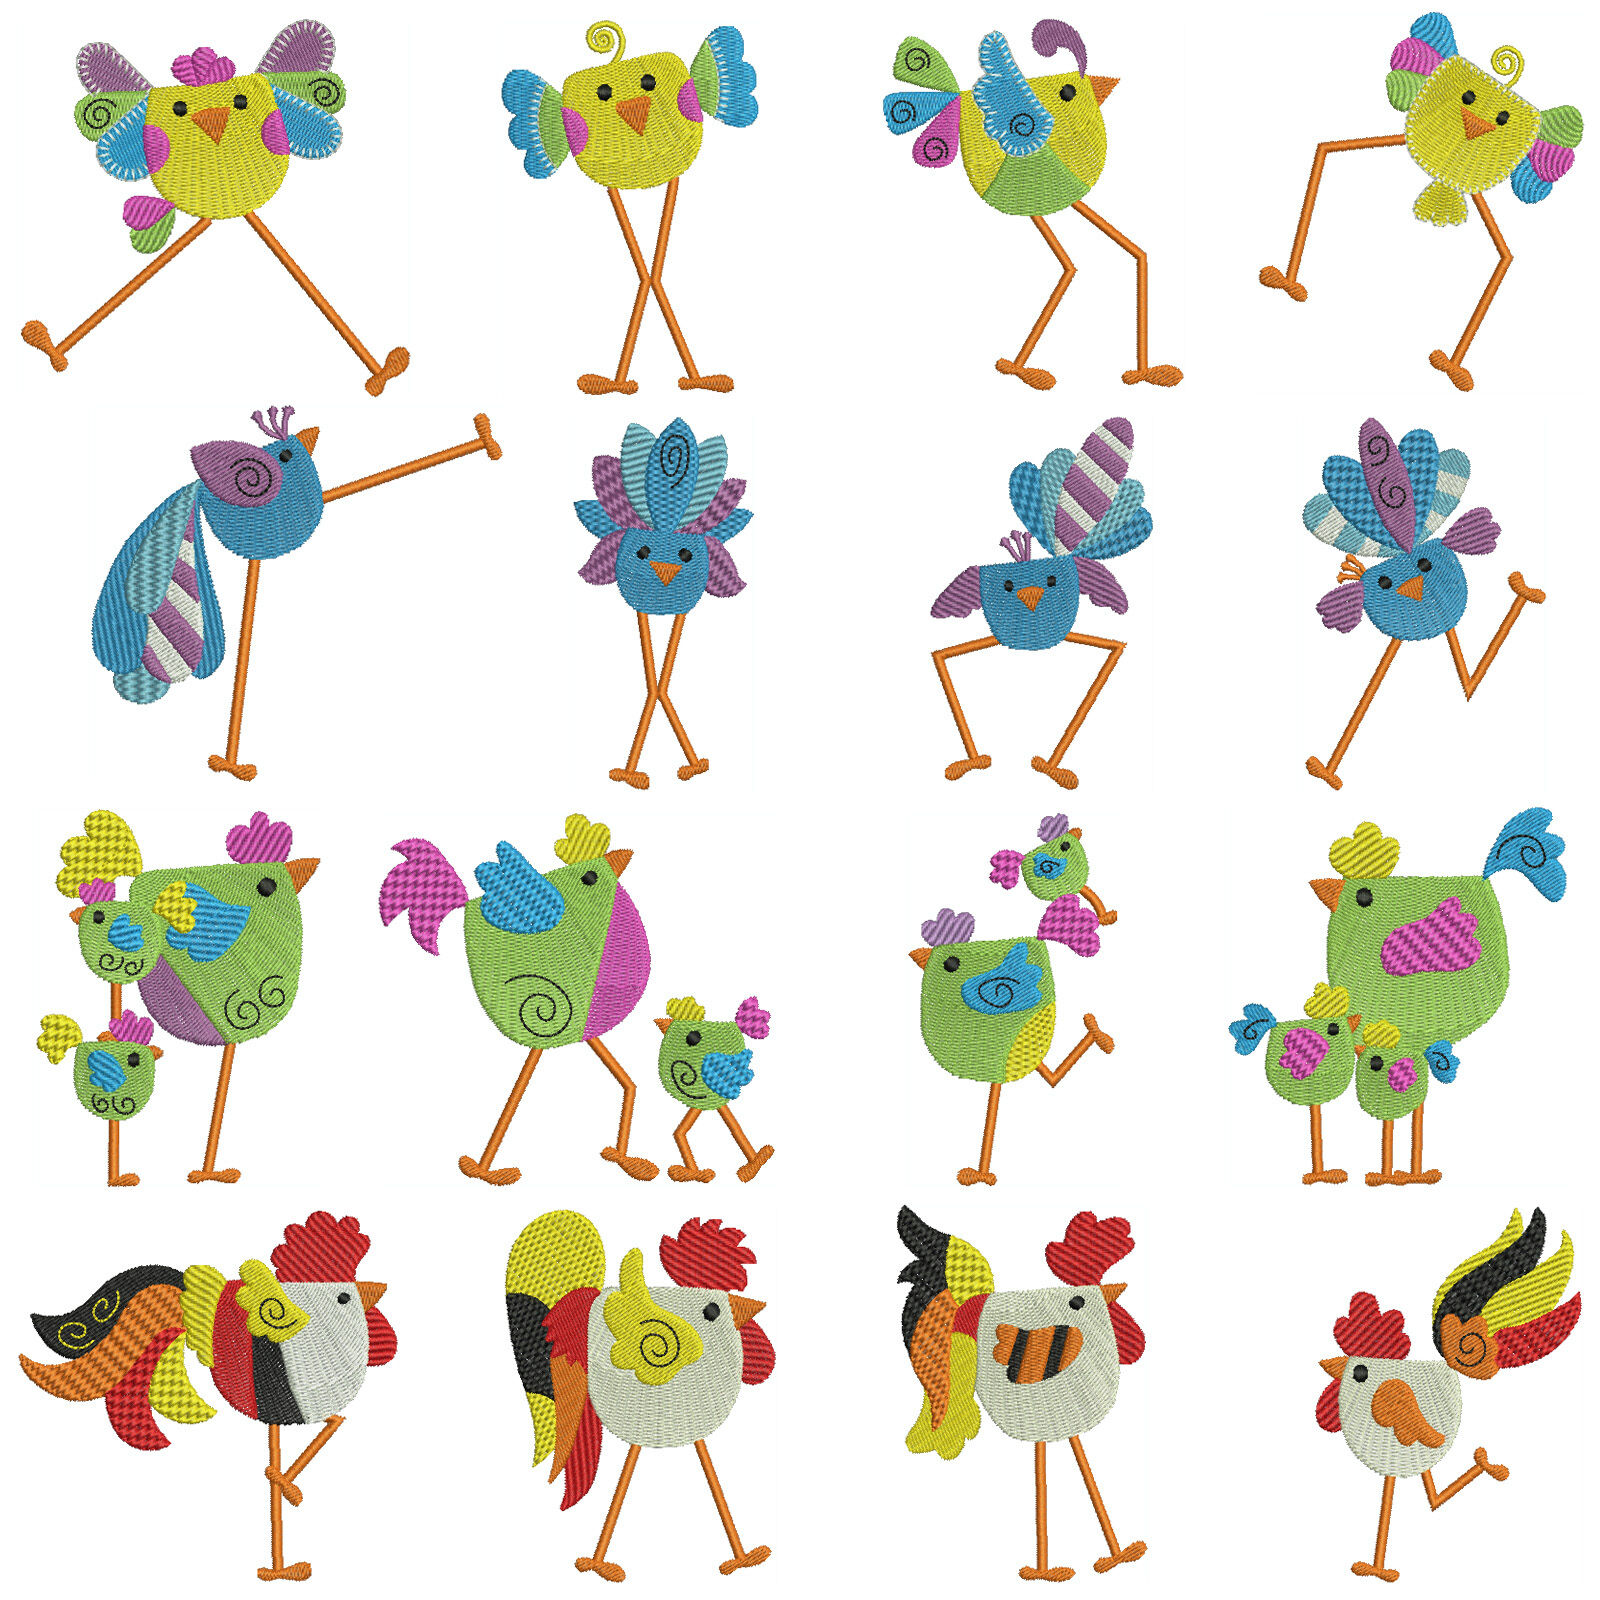 Tweety machine embroidery patterns designs